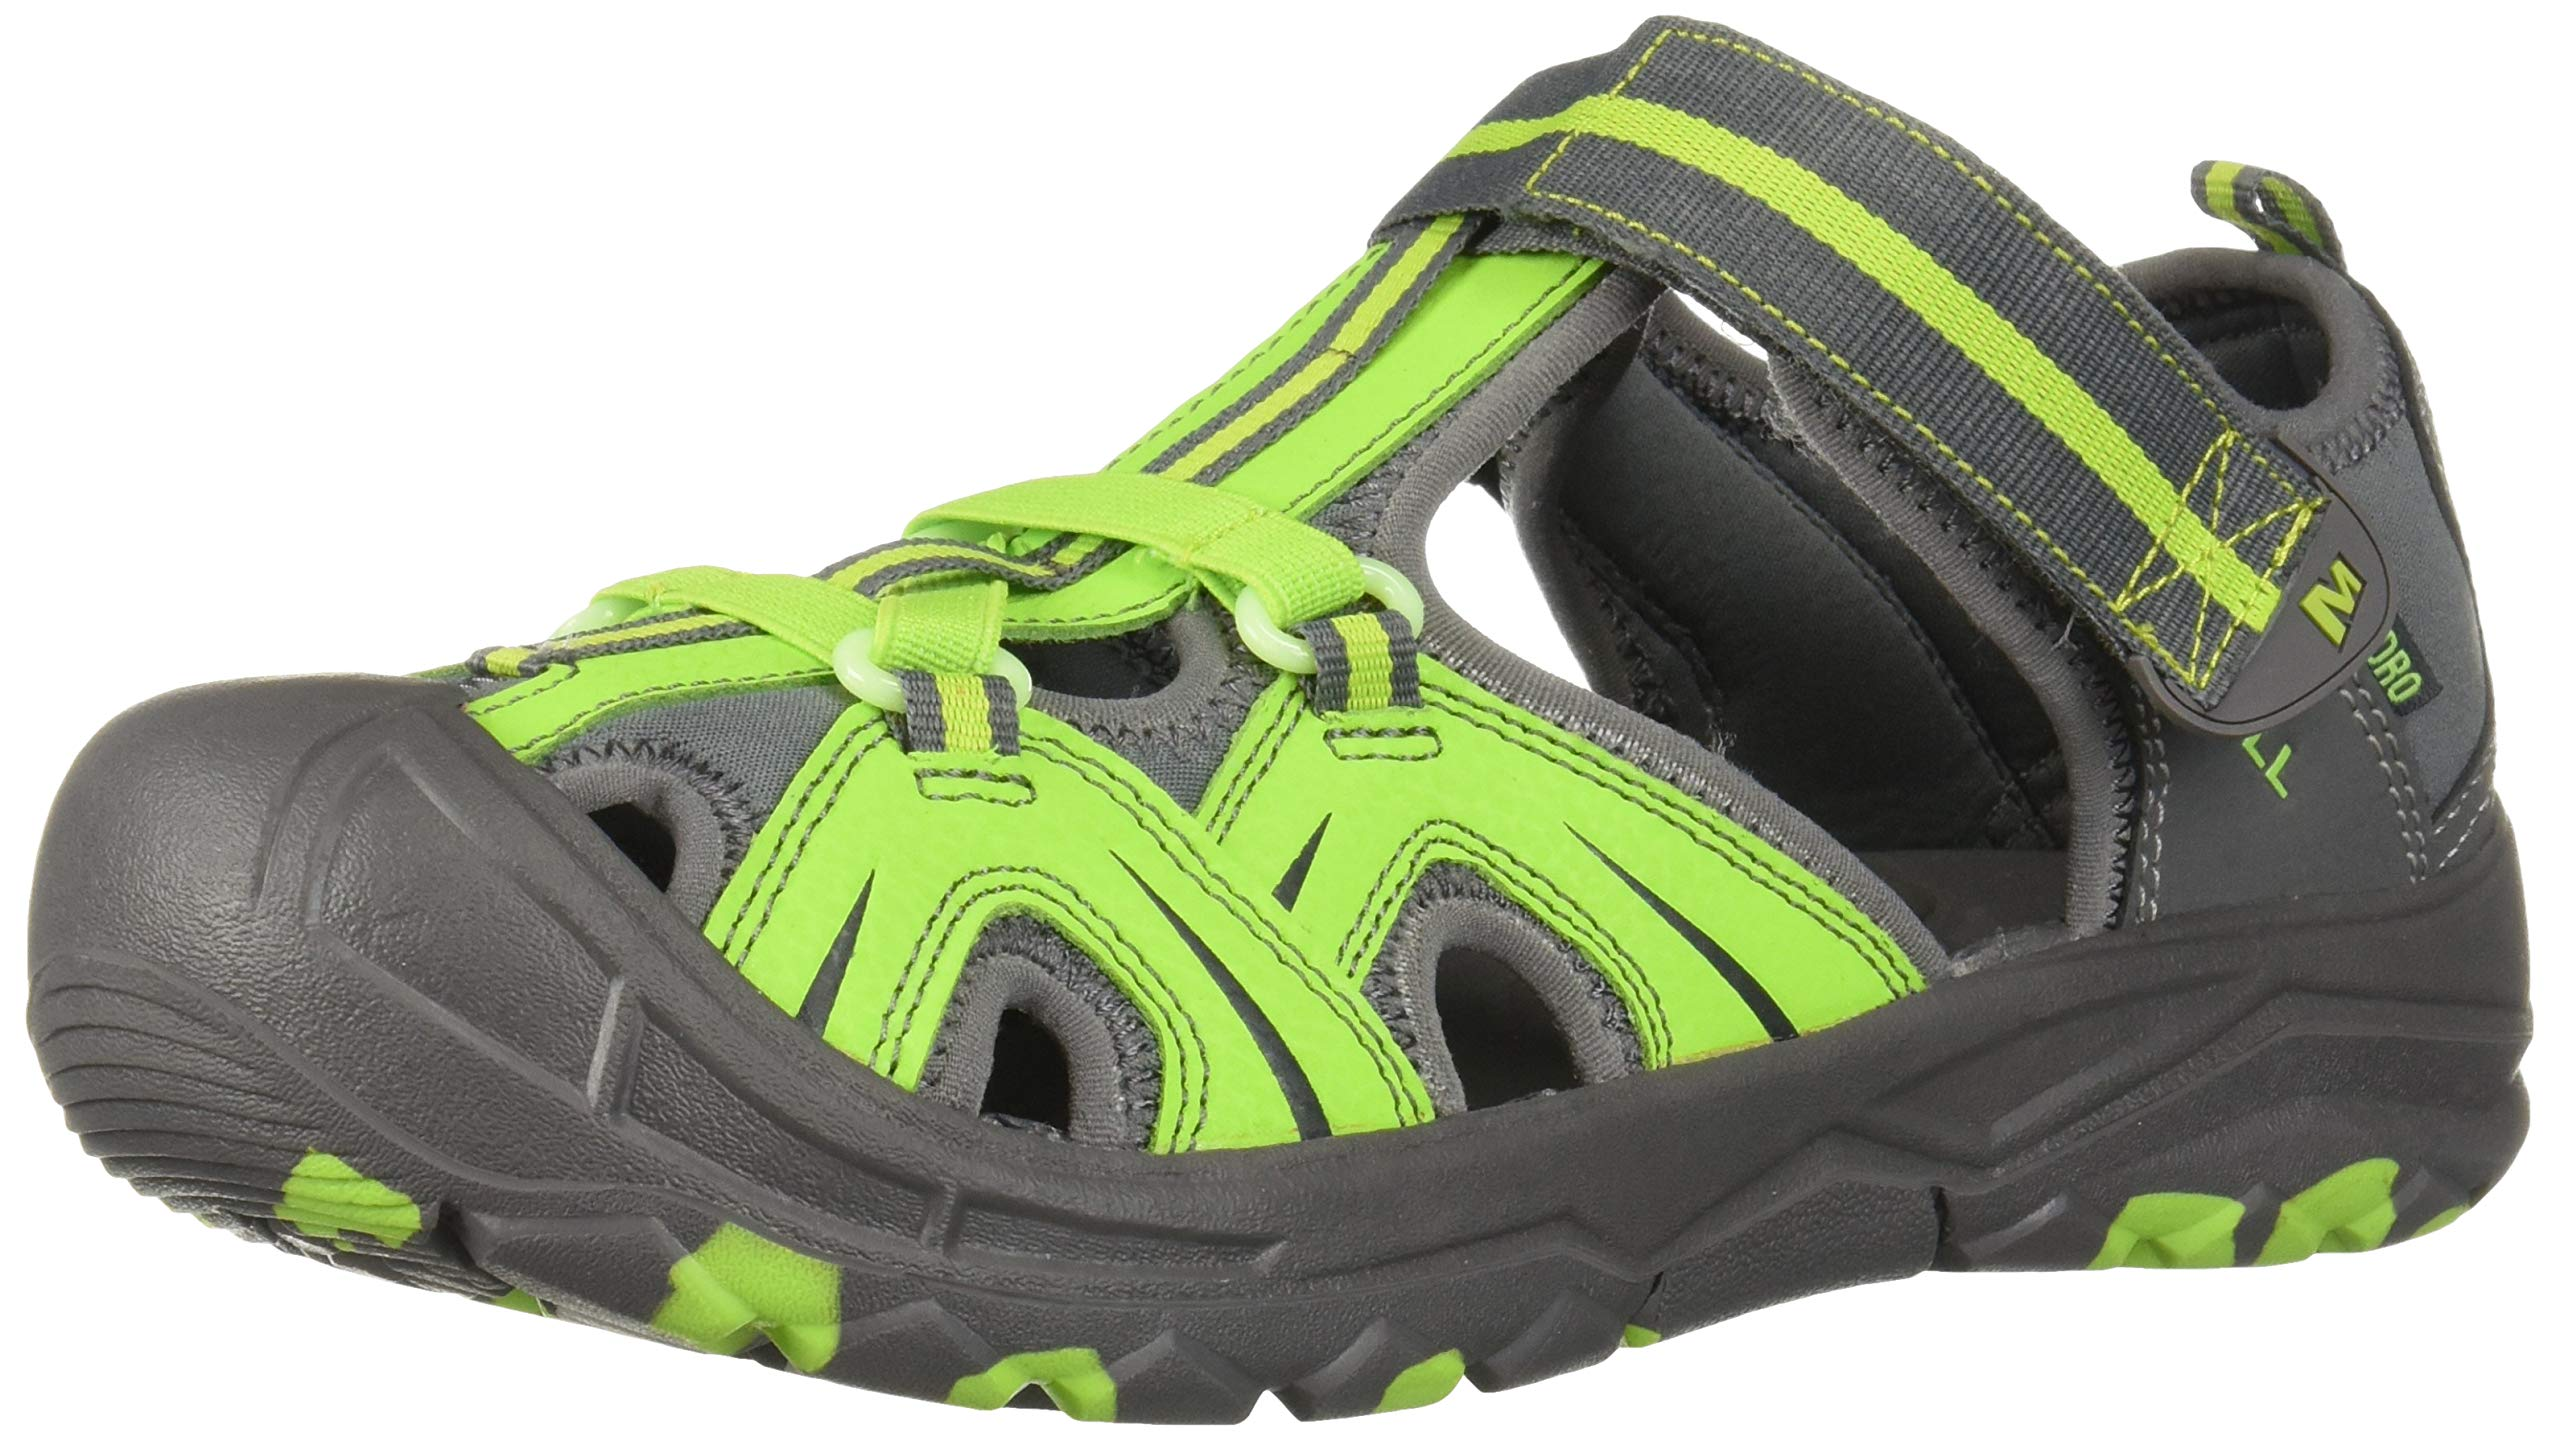 Merrell Boys' Hydro Sandal, Grey/Green, 10 Medium US Toddler by Merrell